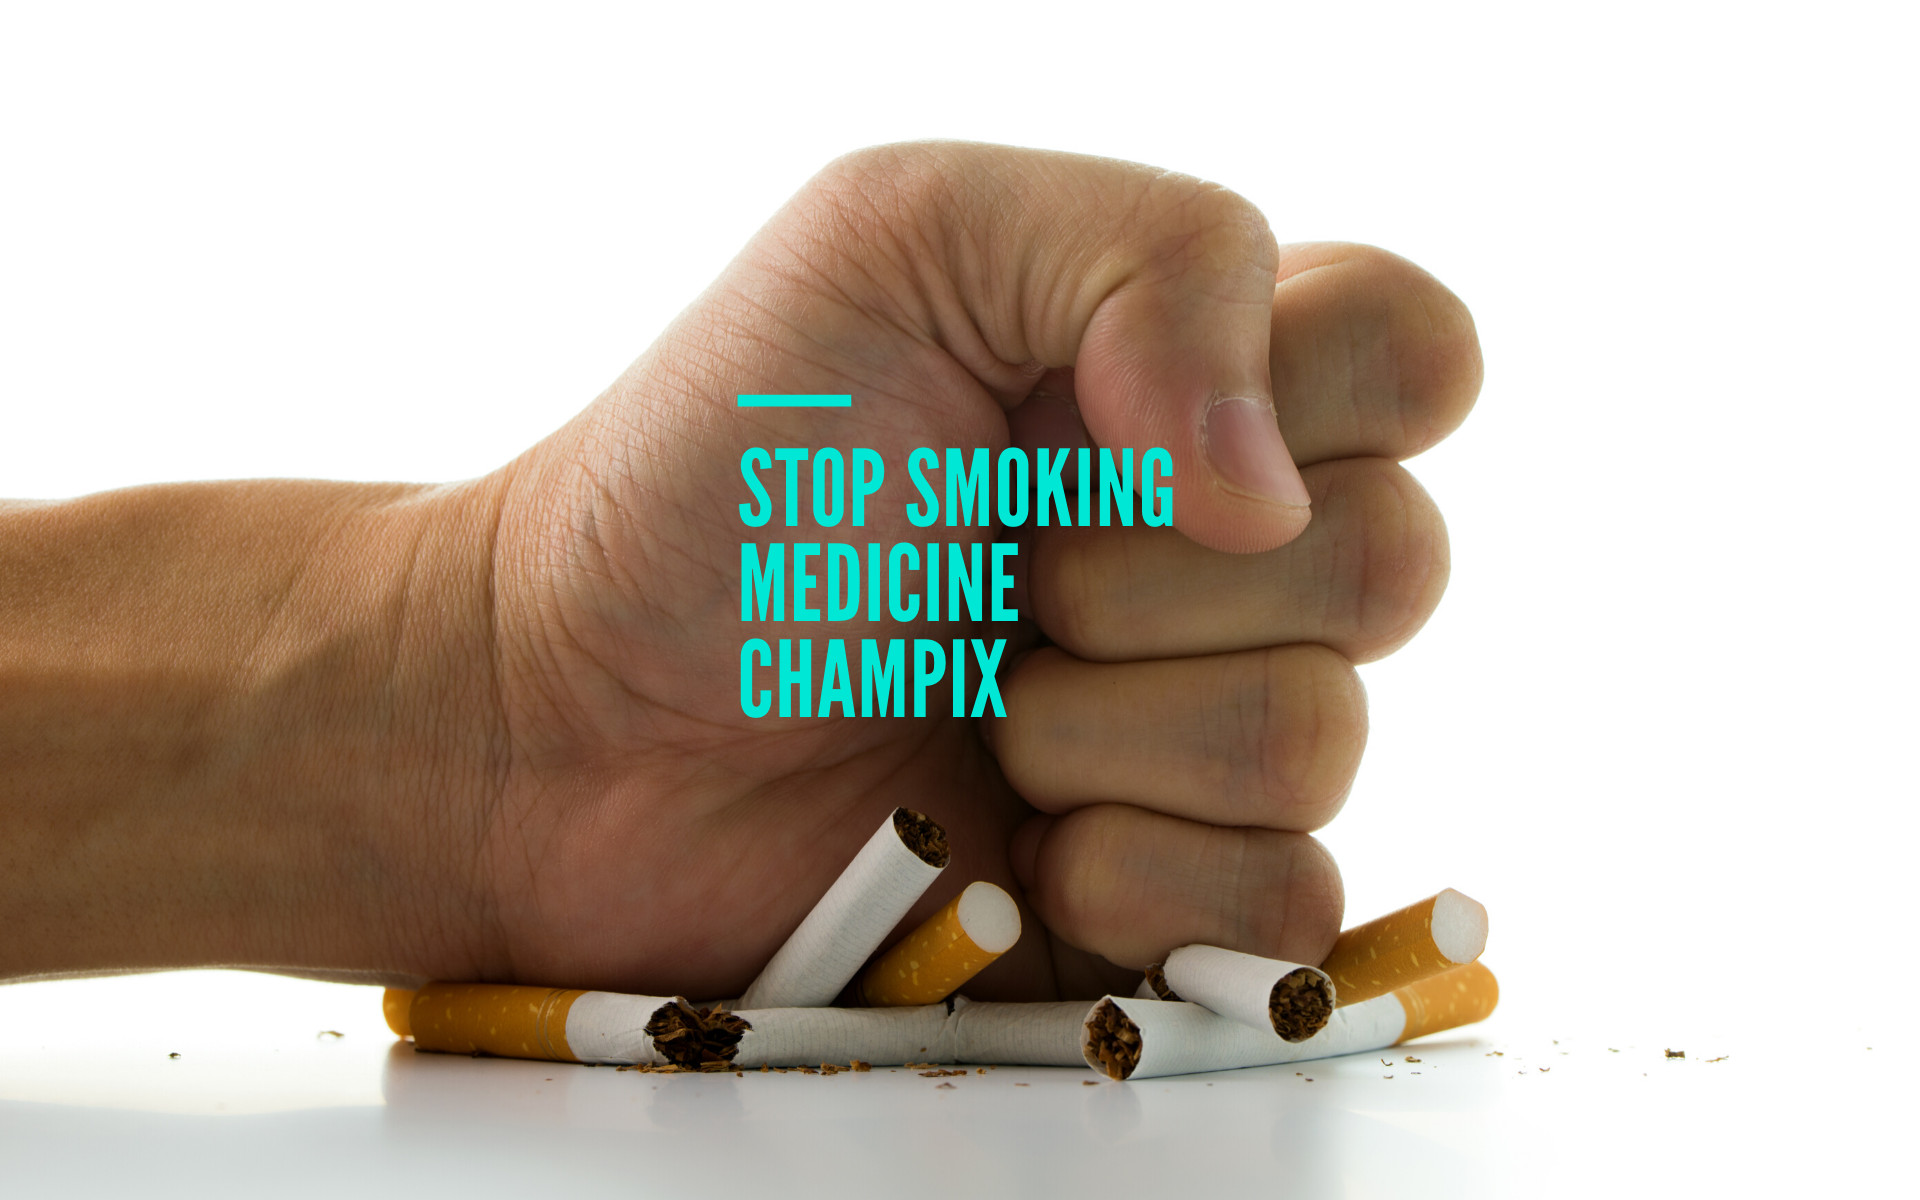 Quitting smoking with CHAMPIX - UK - Croydon